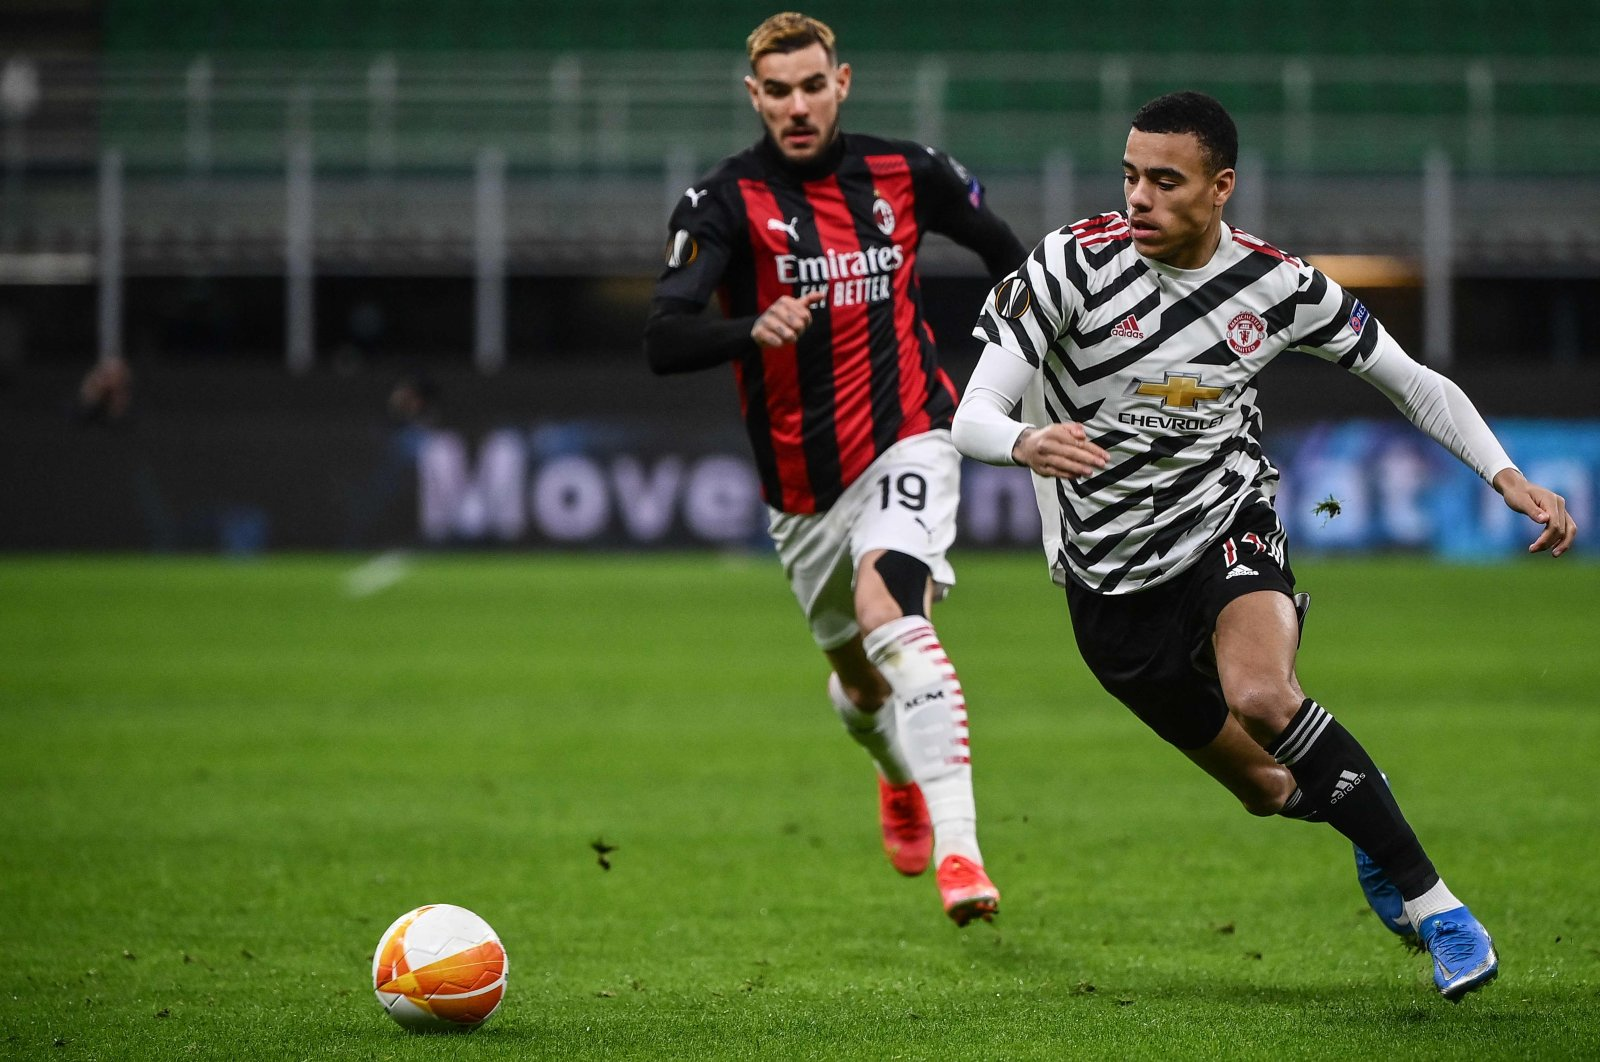 Manchester United forward Mason Greenwood (R) outflanks AC Milan's French defender Theo Hernandez during their UEFA Europa League Round of 16, second-leg match at the San Siro, Milan, Italy, March 18, 2021. (AFP Photo)